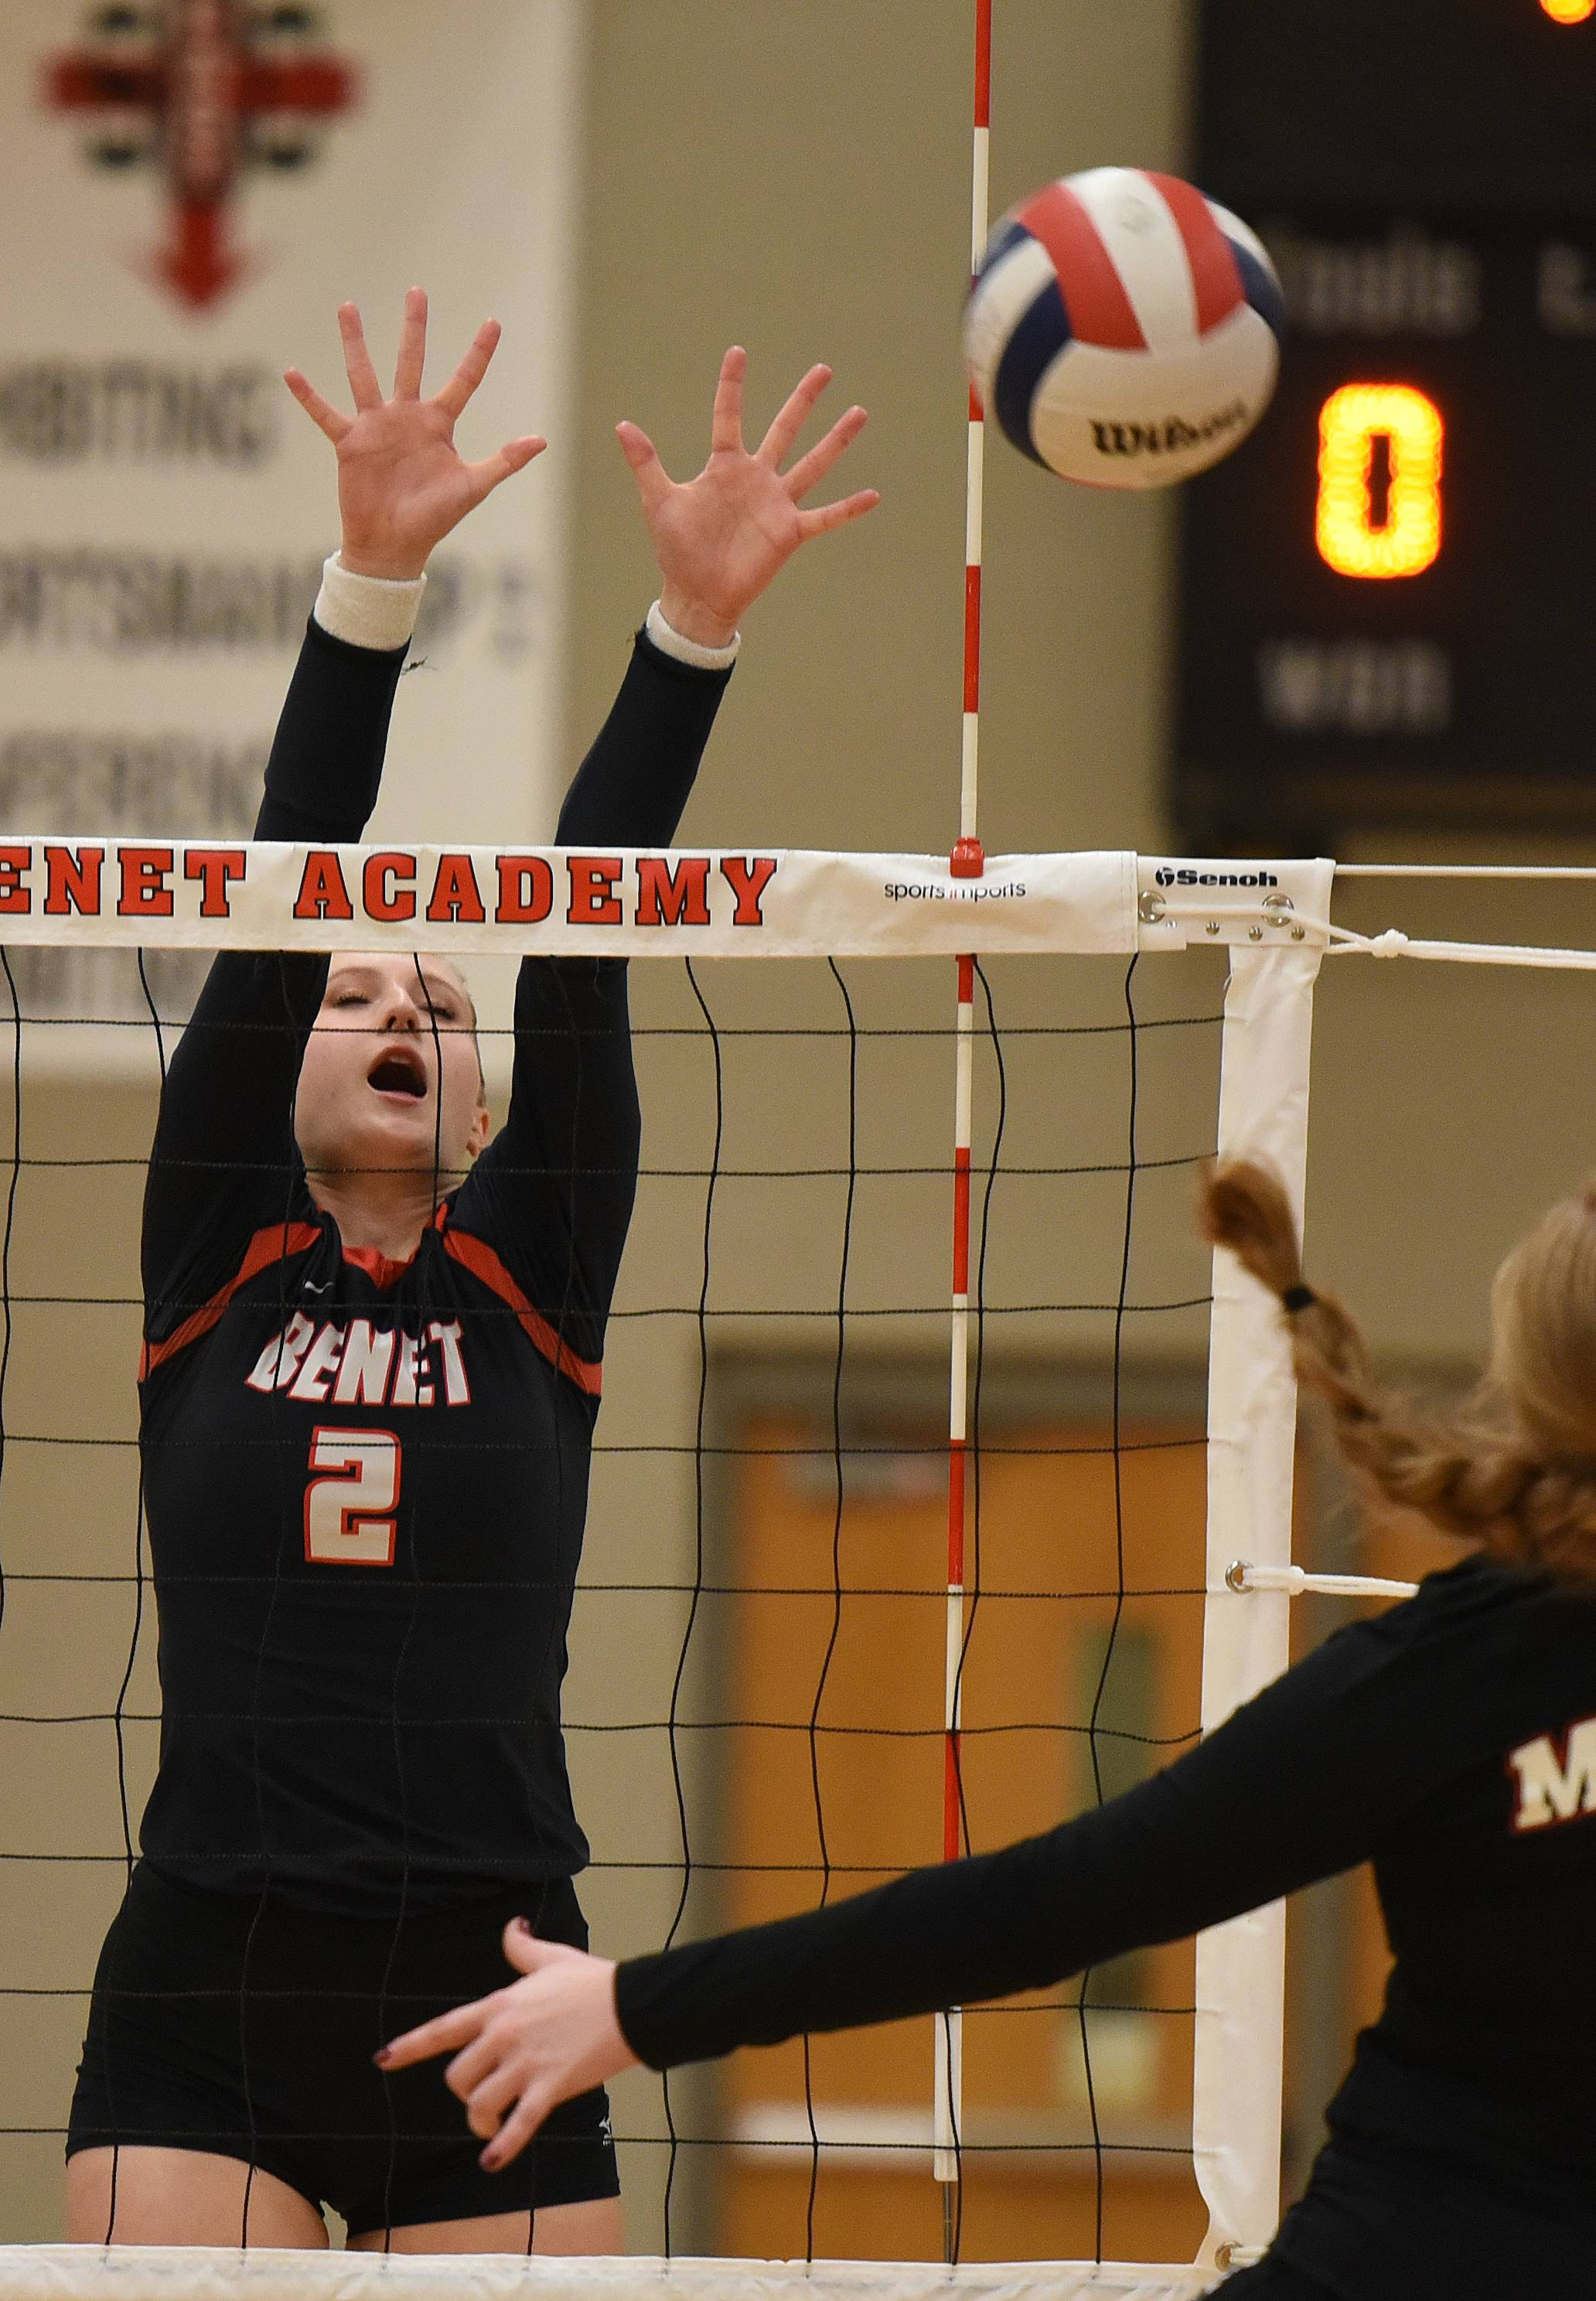 Paul Michna/pmichna@dailyherald.comBenet's Veronica Snelling (2) goes for a block during the Marist at Benet girls volleyball game Thursday.